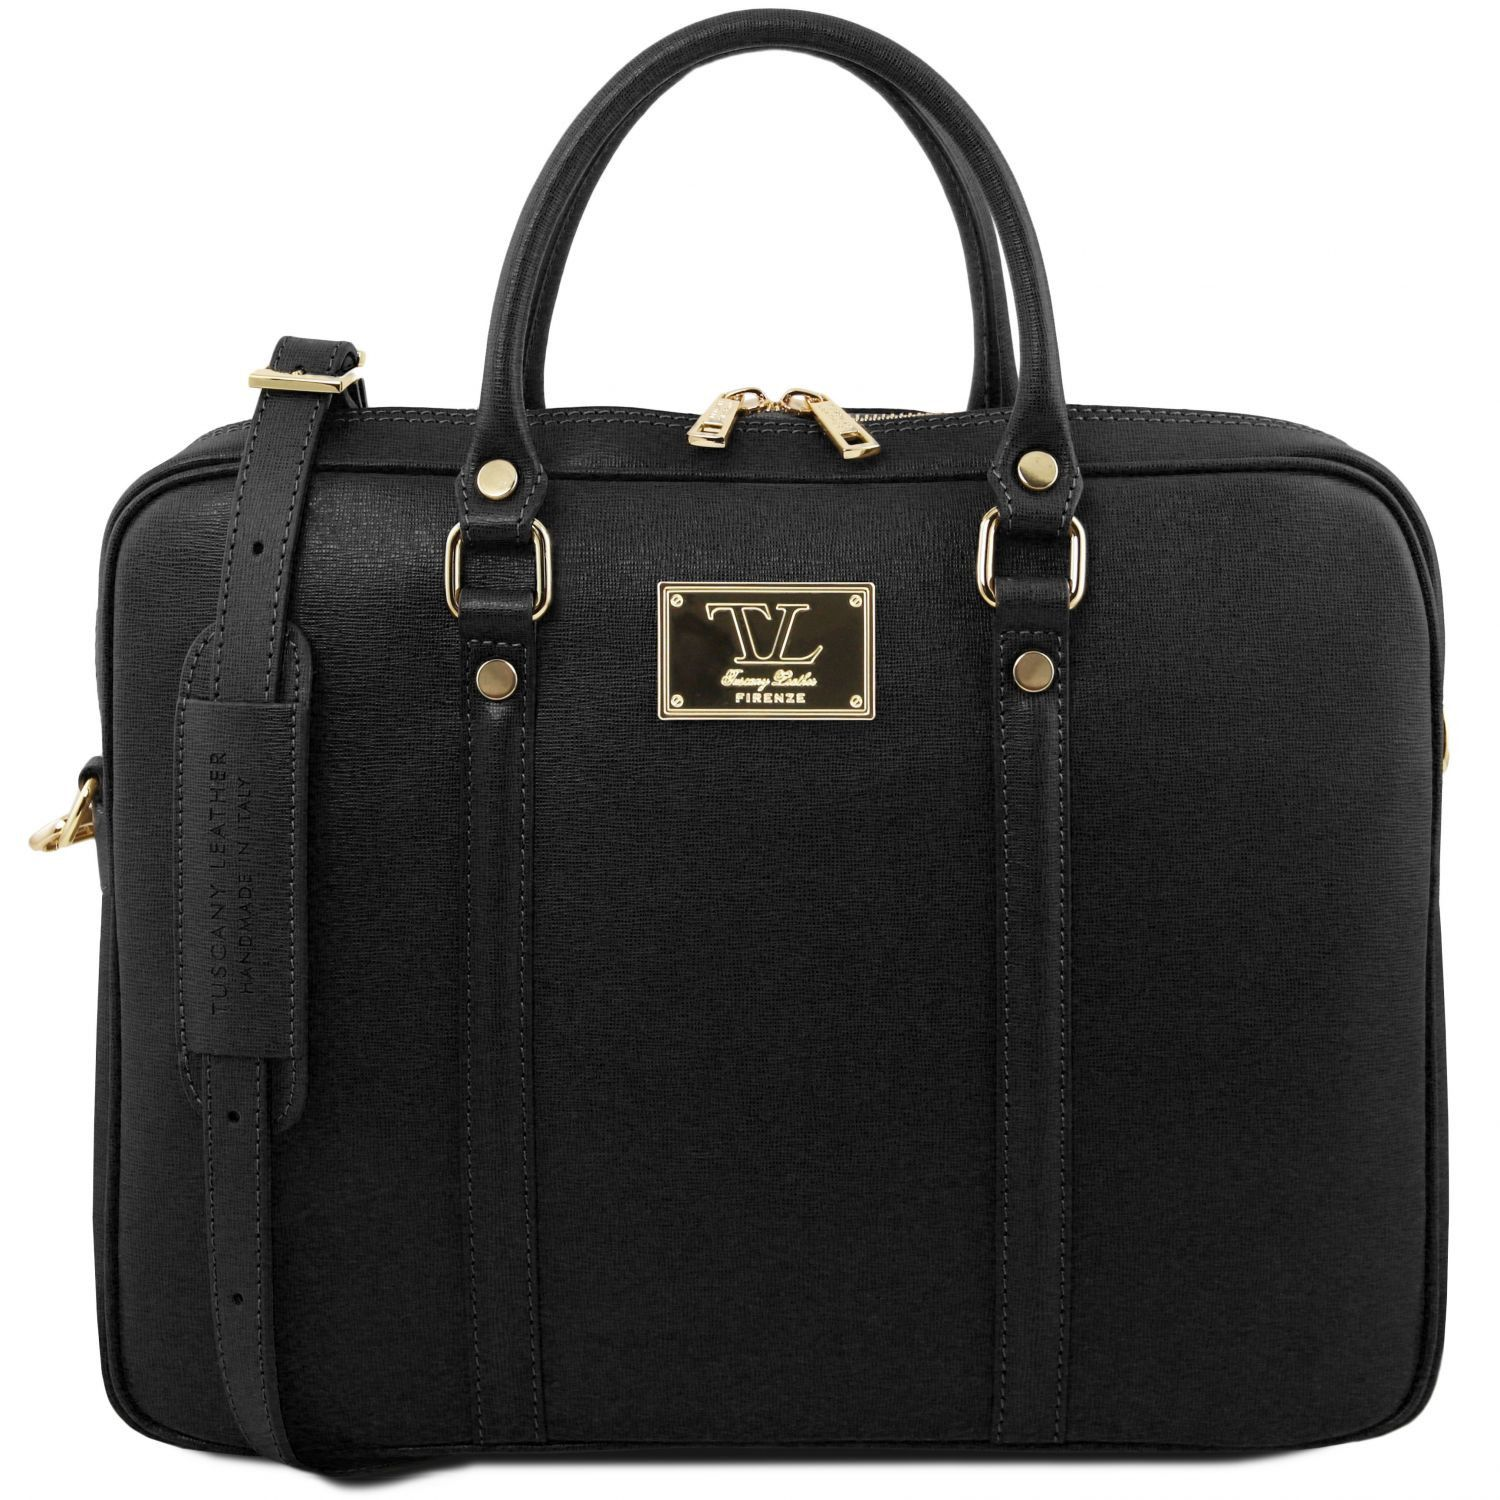 Prato - Exclusive Saffiano leather laptop case (TL141626) - Leather laptop bags | DILUSSOBAGS